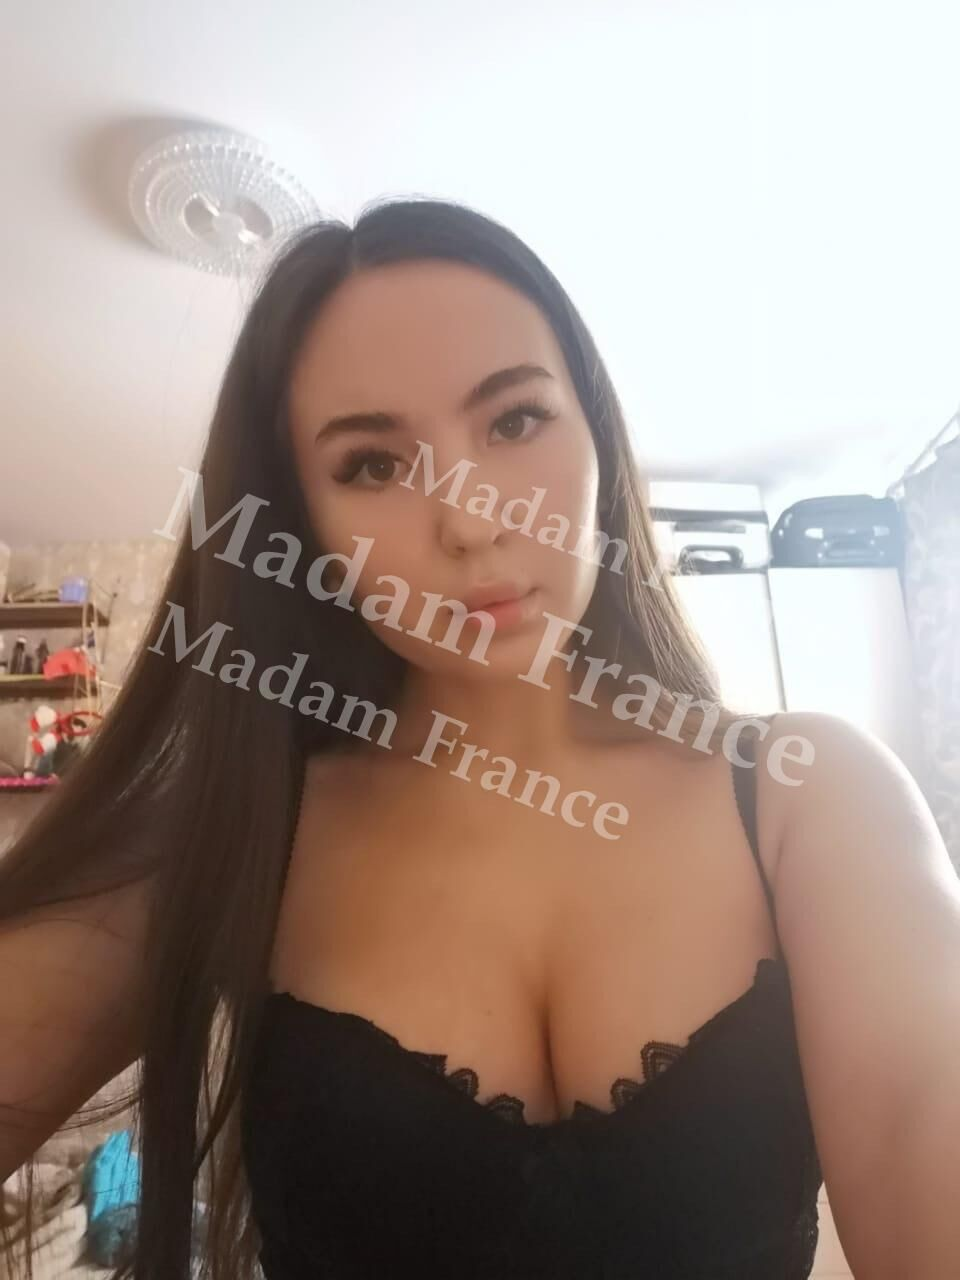 Dory model on Madam France escort service